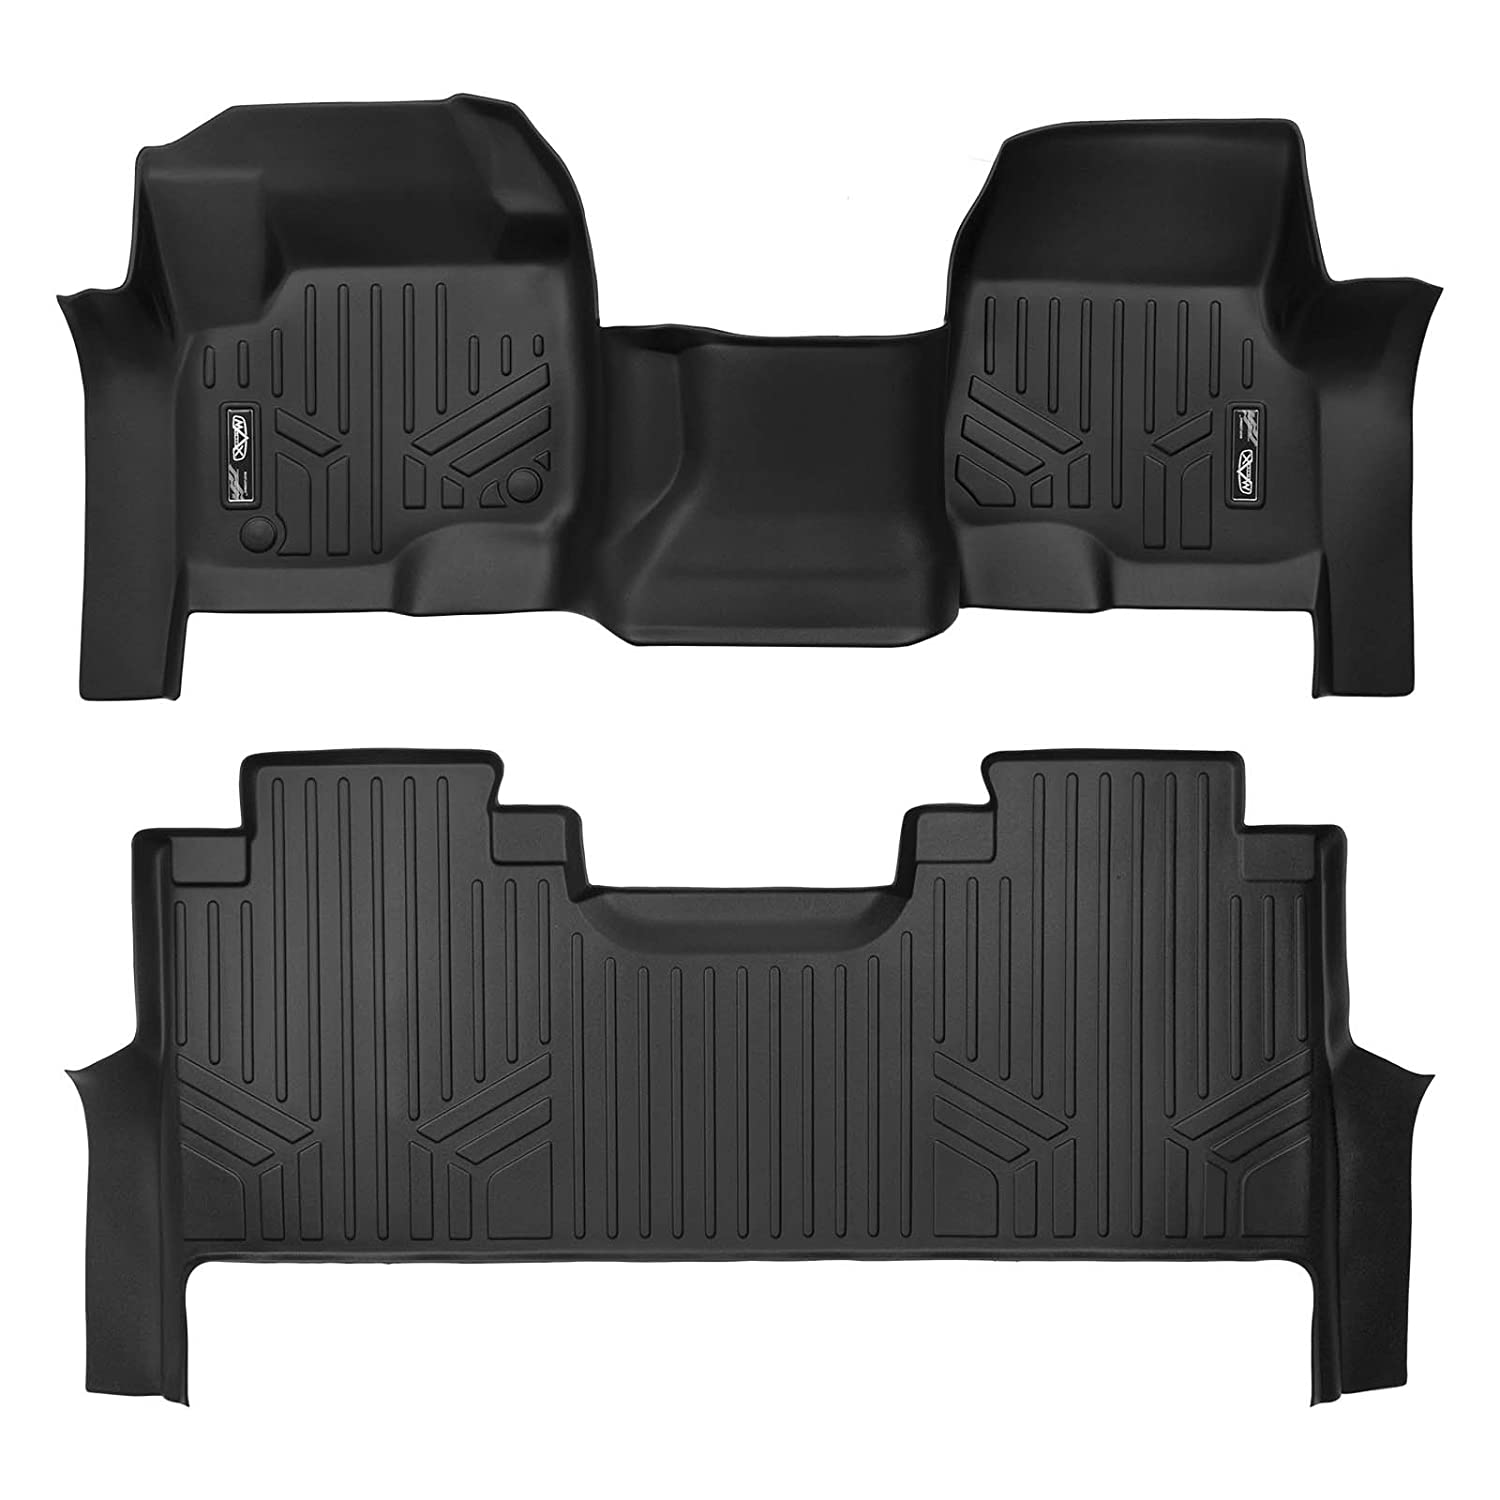 MAX LINER A0298/B0298 MAXFLOORMAT Floor Mats for Ford Super Duty Crew Cab with 1st Bench Seat 2017-2019 2 Row Set (Black)